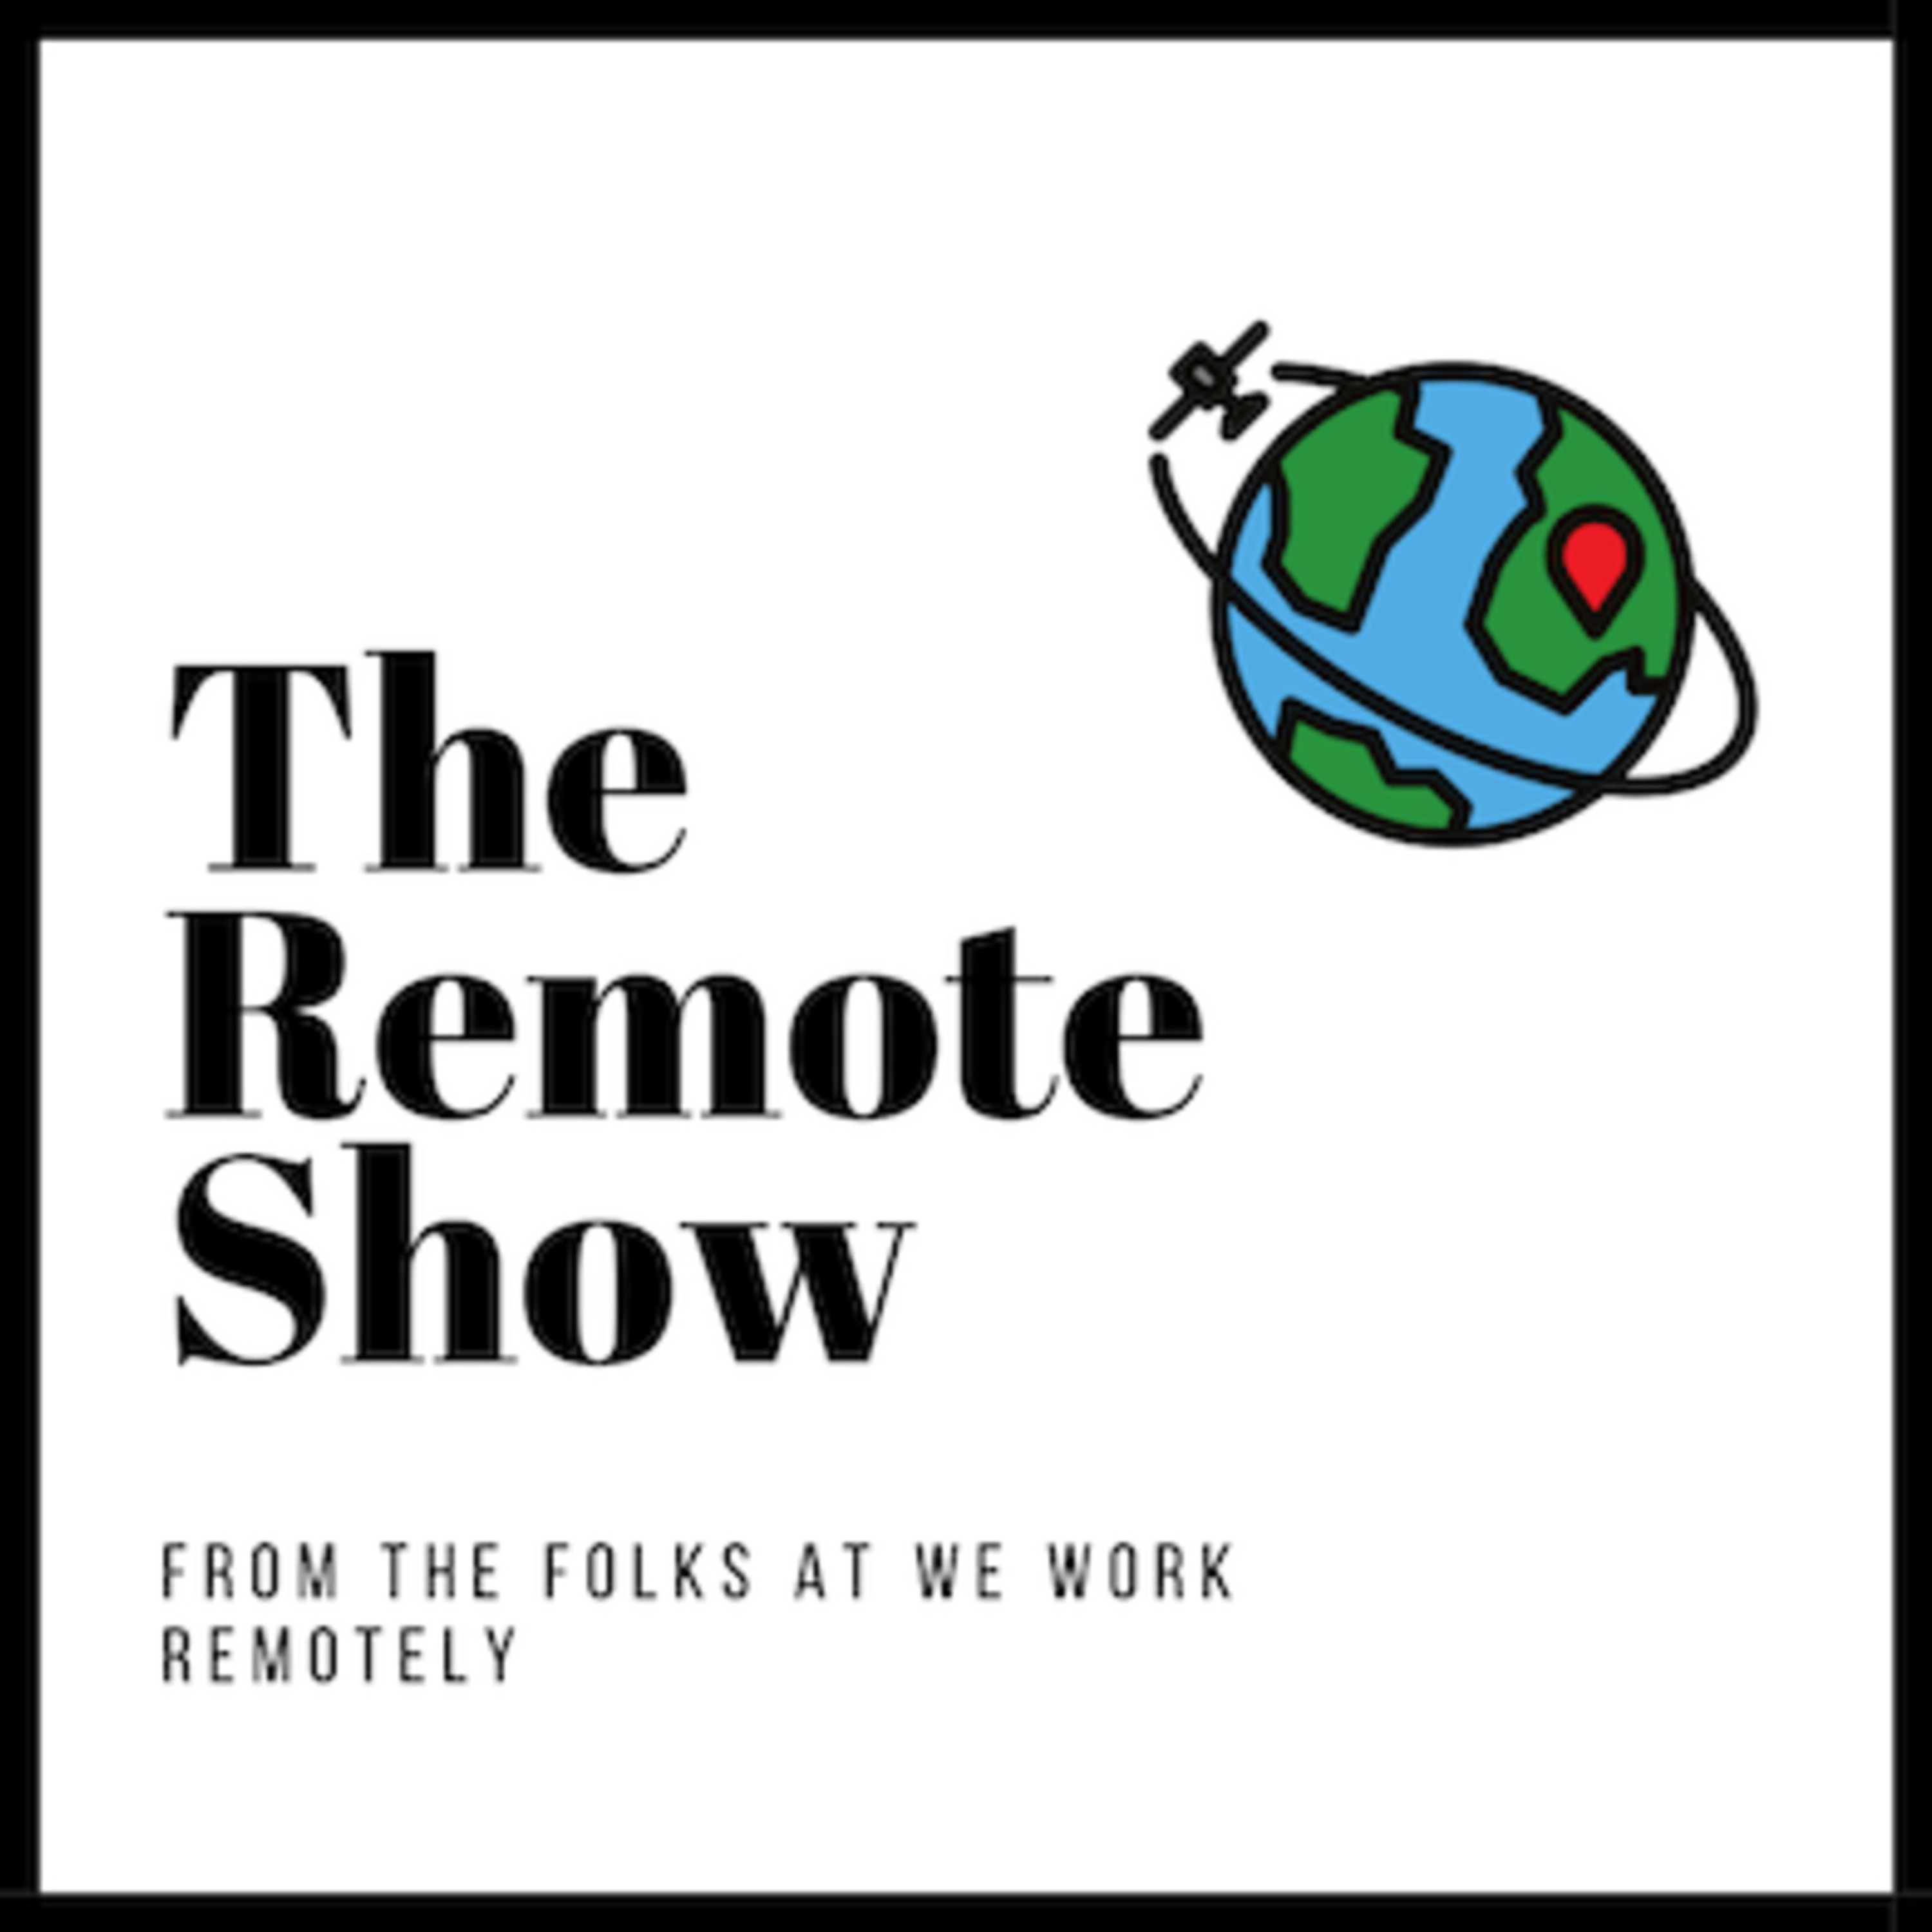 The Remote Show podcast show image